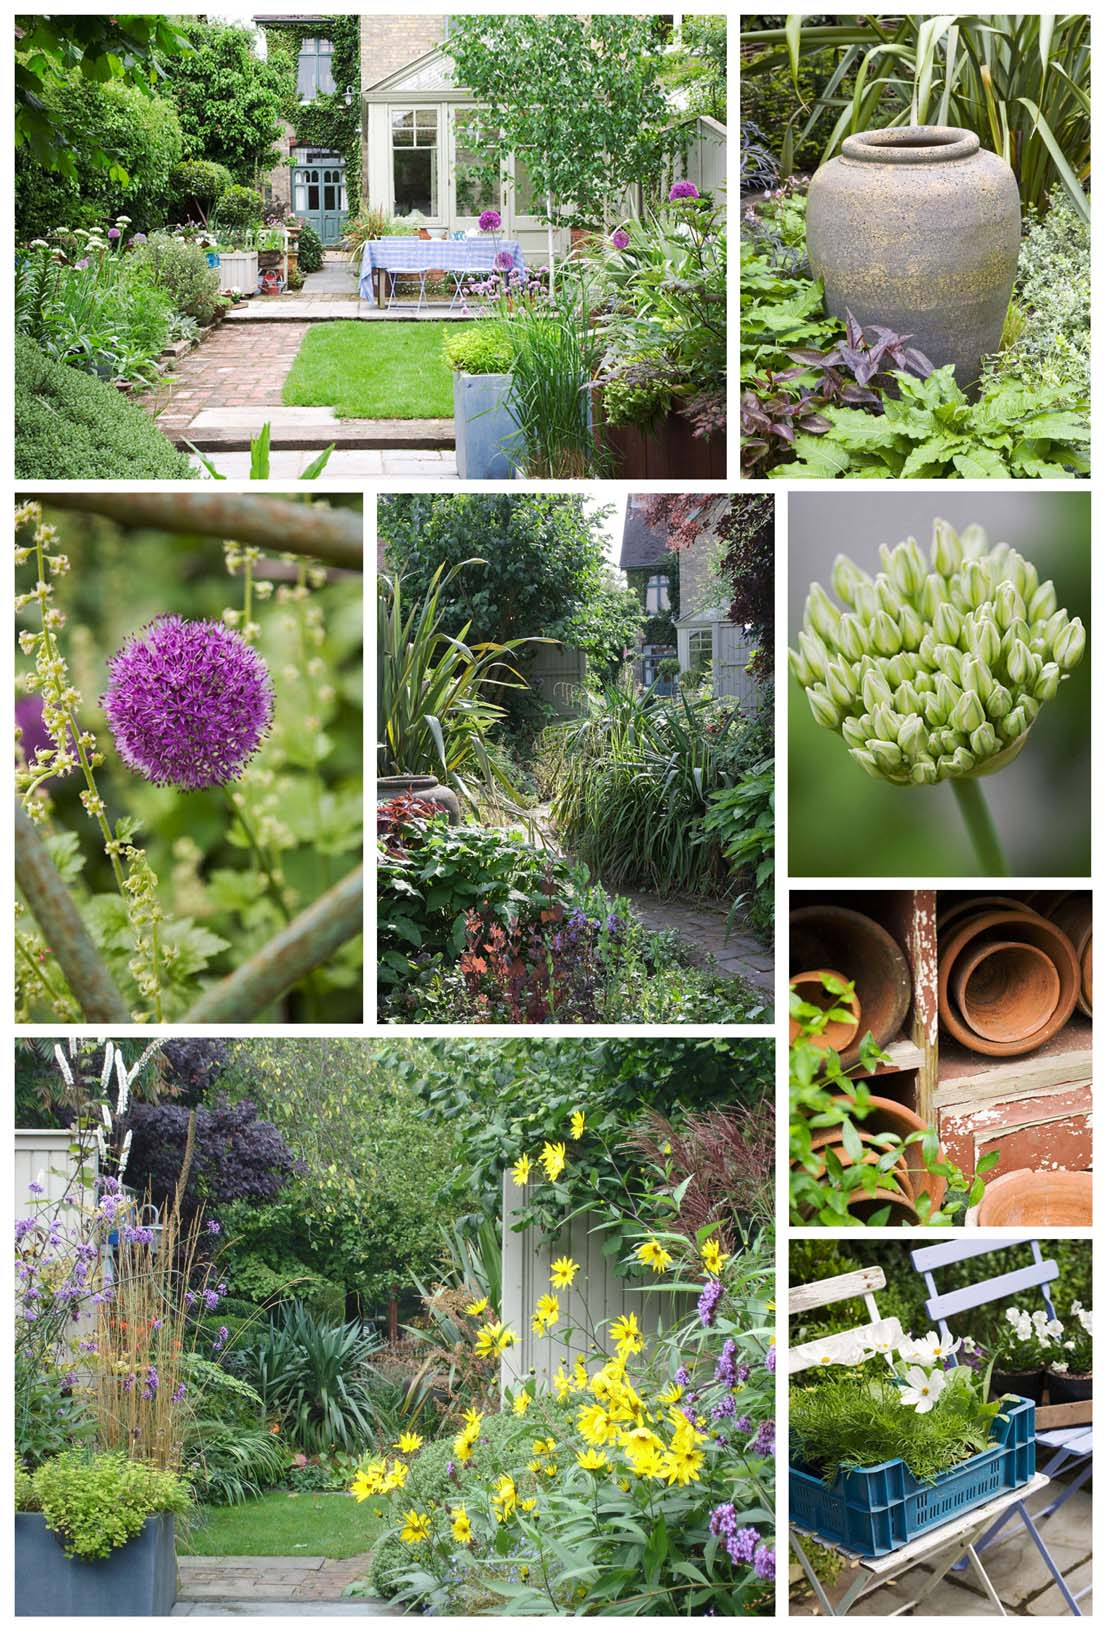 Helen riches garden design and writing my garden for Design my landscape